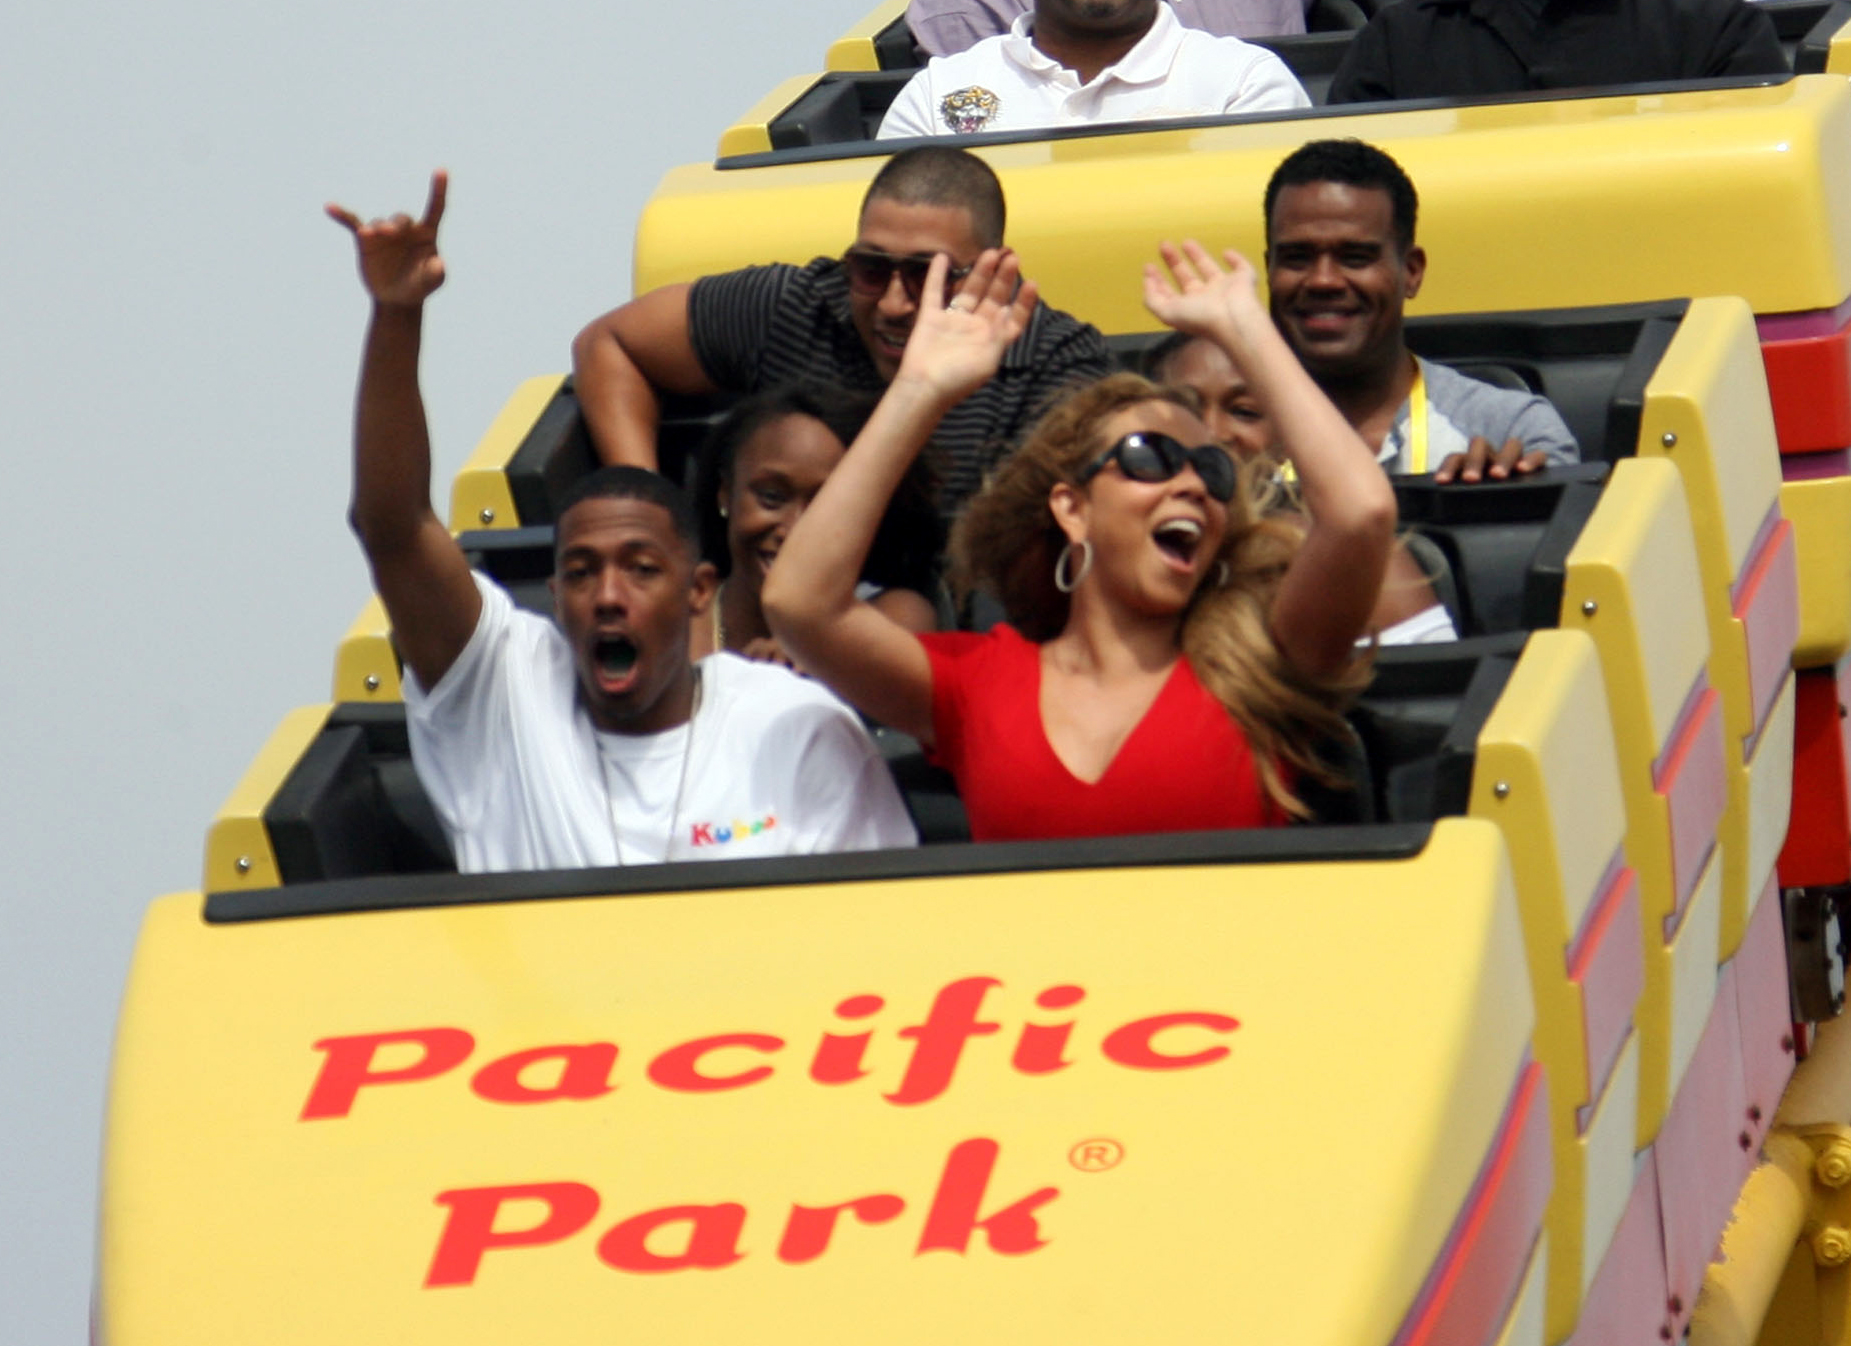 Nick Cannon and Mariah Carey spent rode a roller coaster at the Santa Monica Pier.